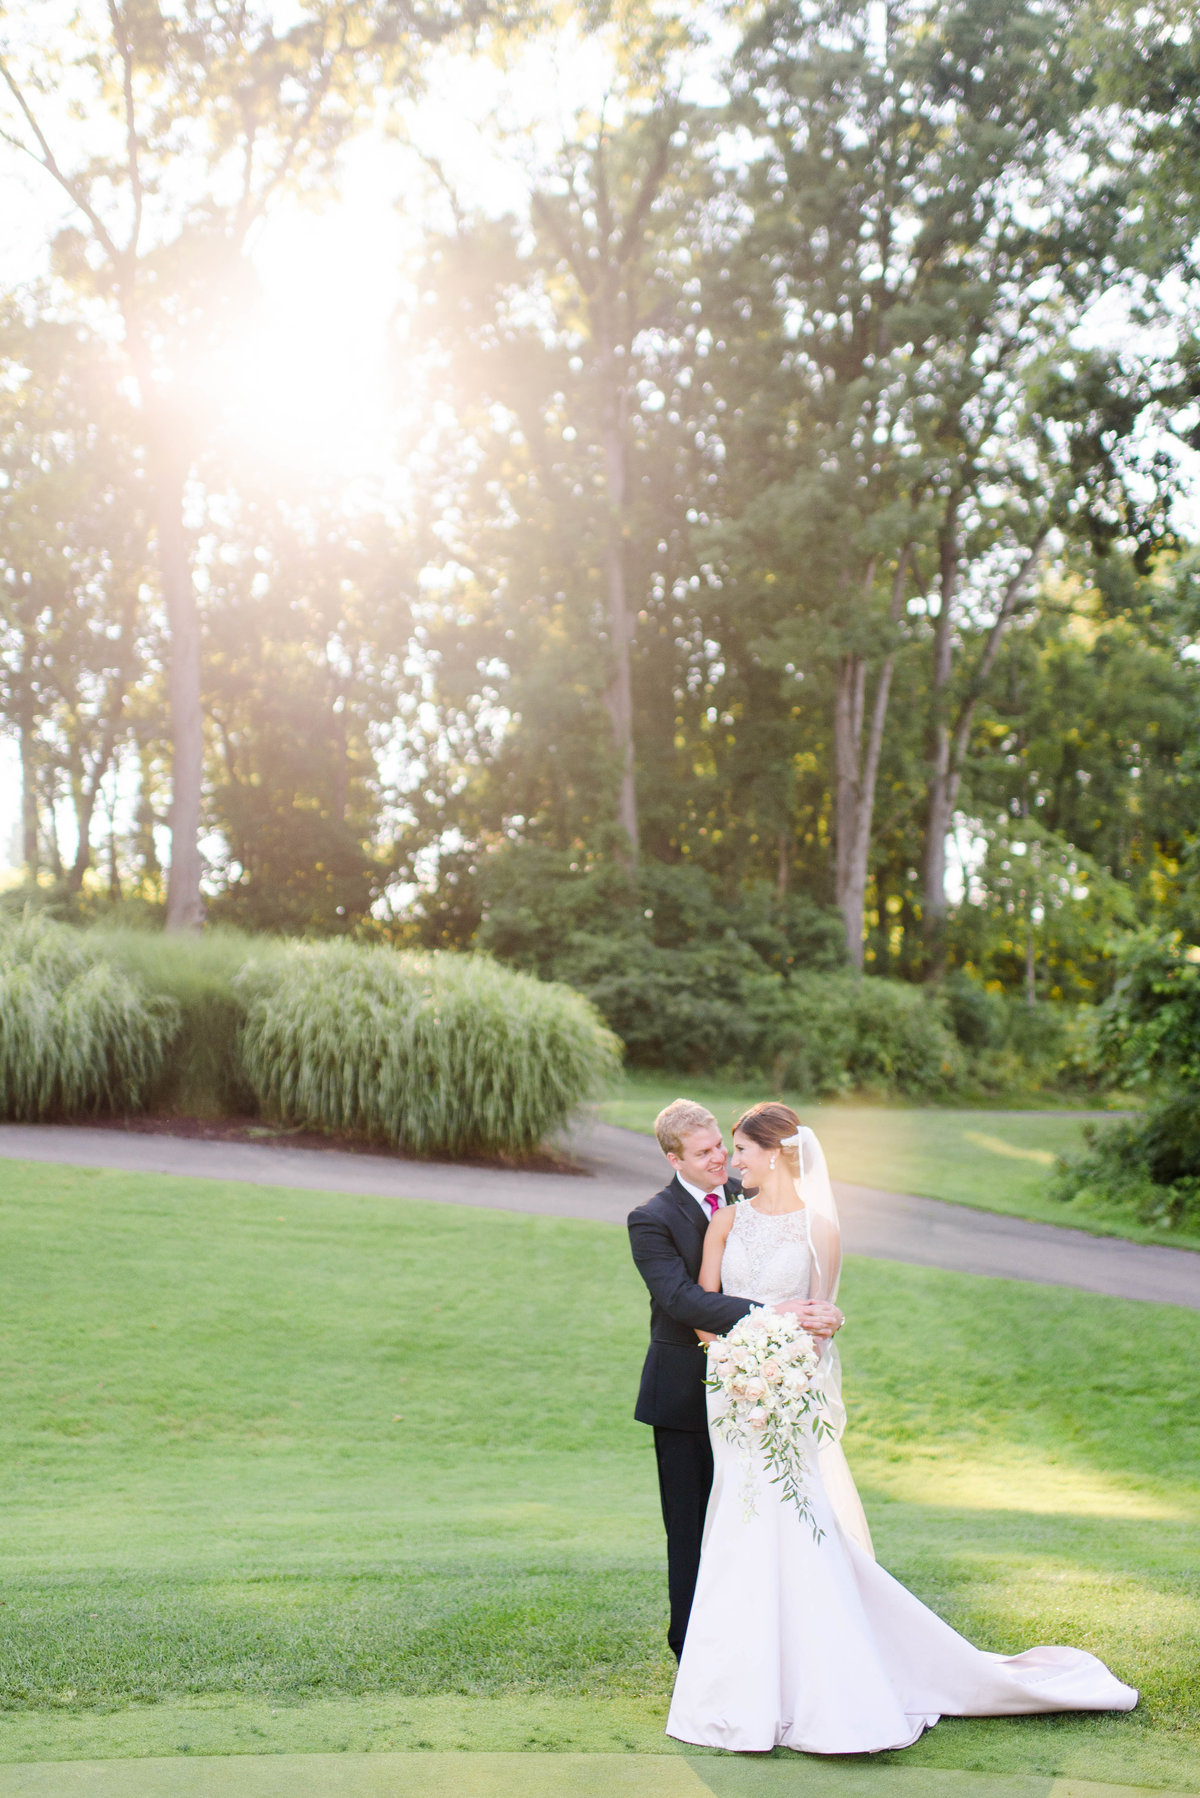 MB-valleybrooke-country-club-wedding-photos-114